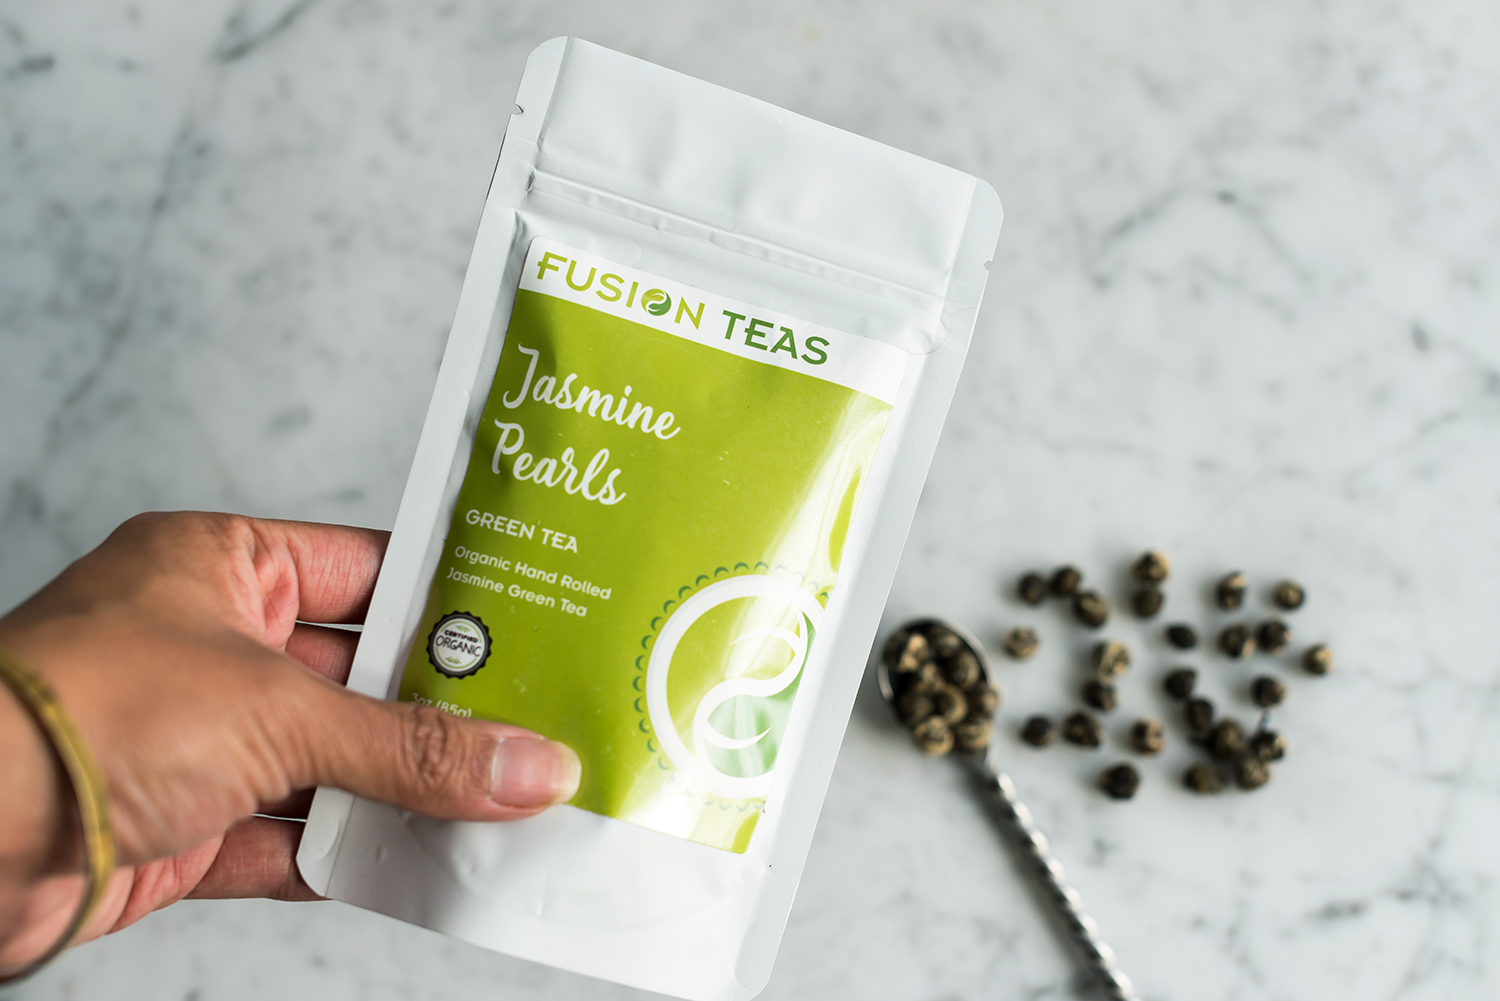 Fusion green tea buyers guide